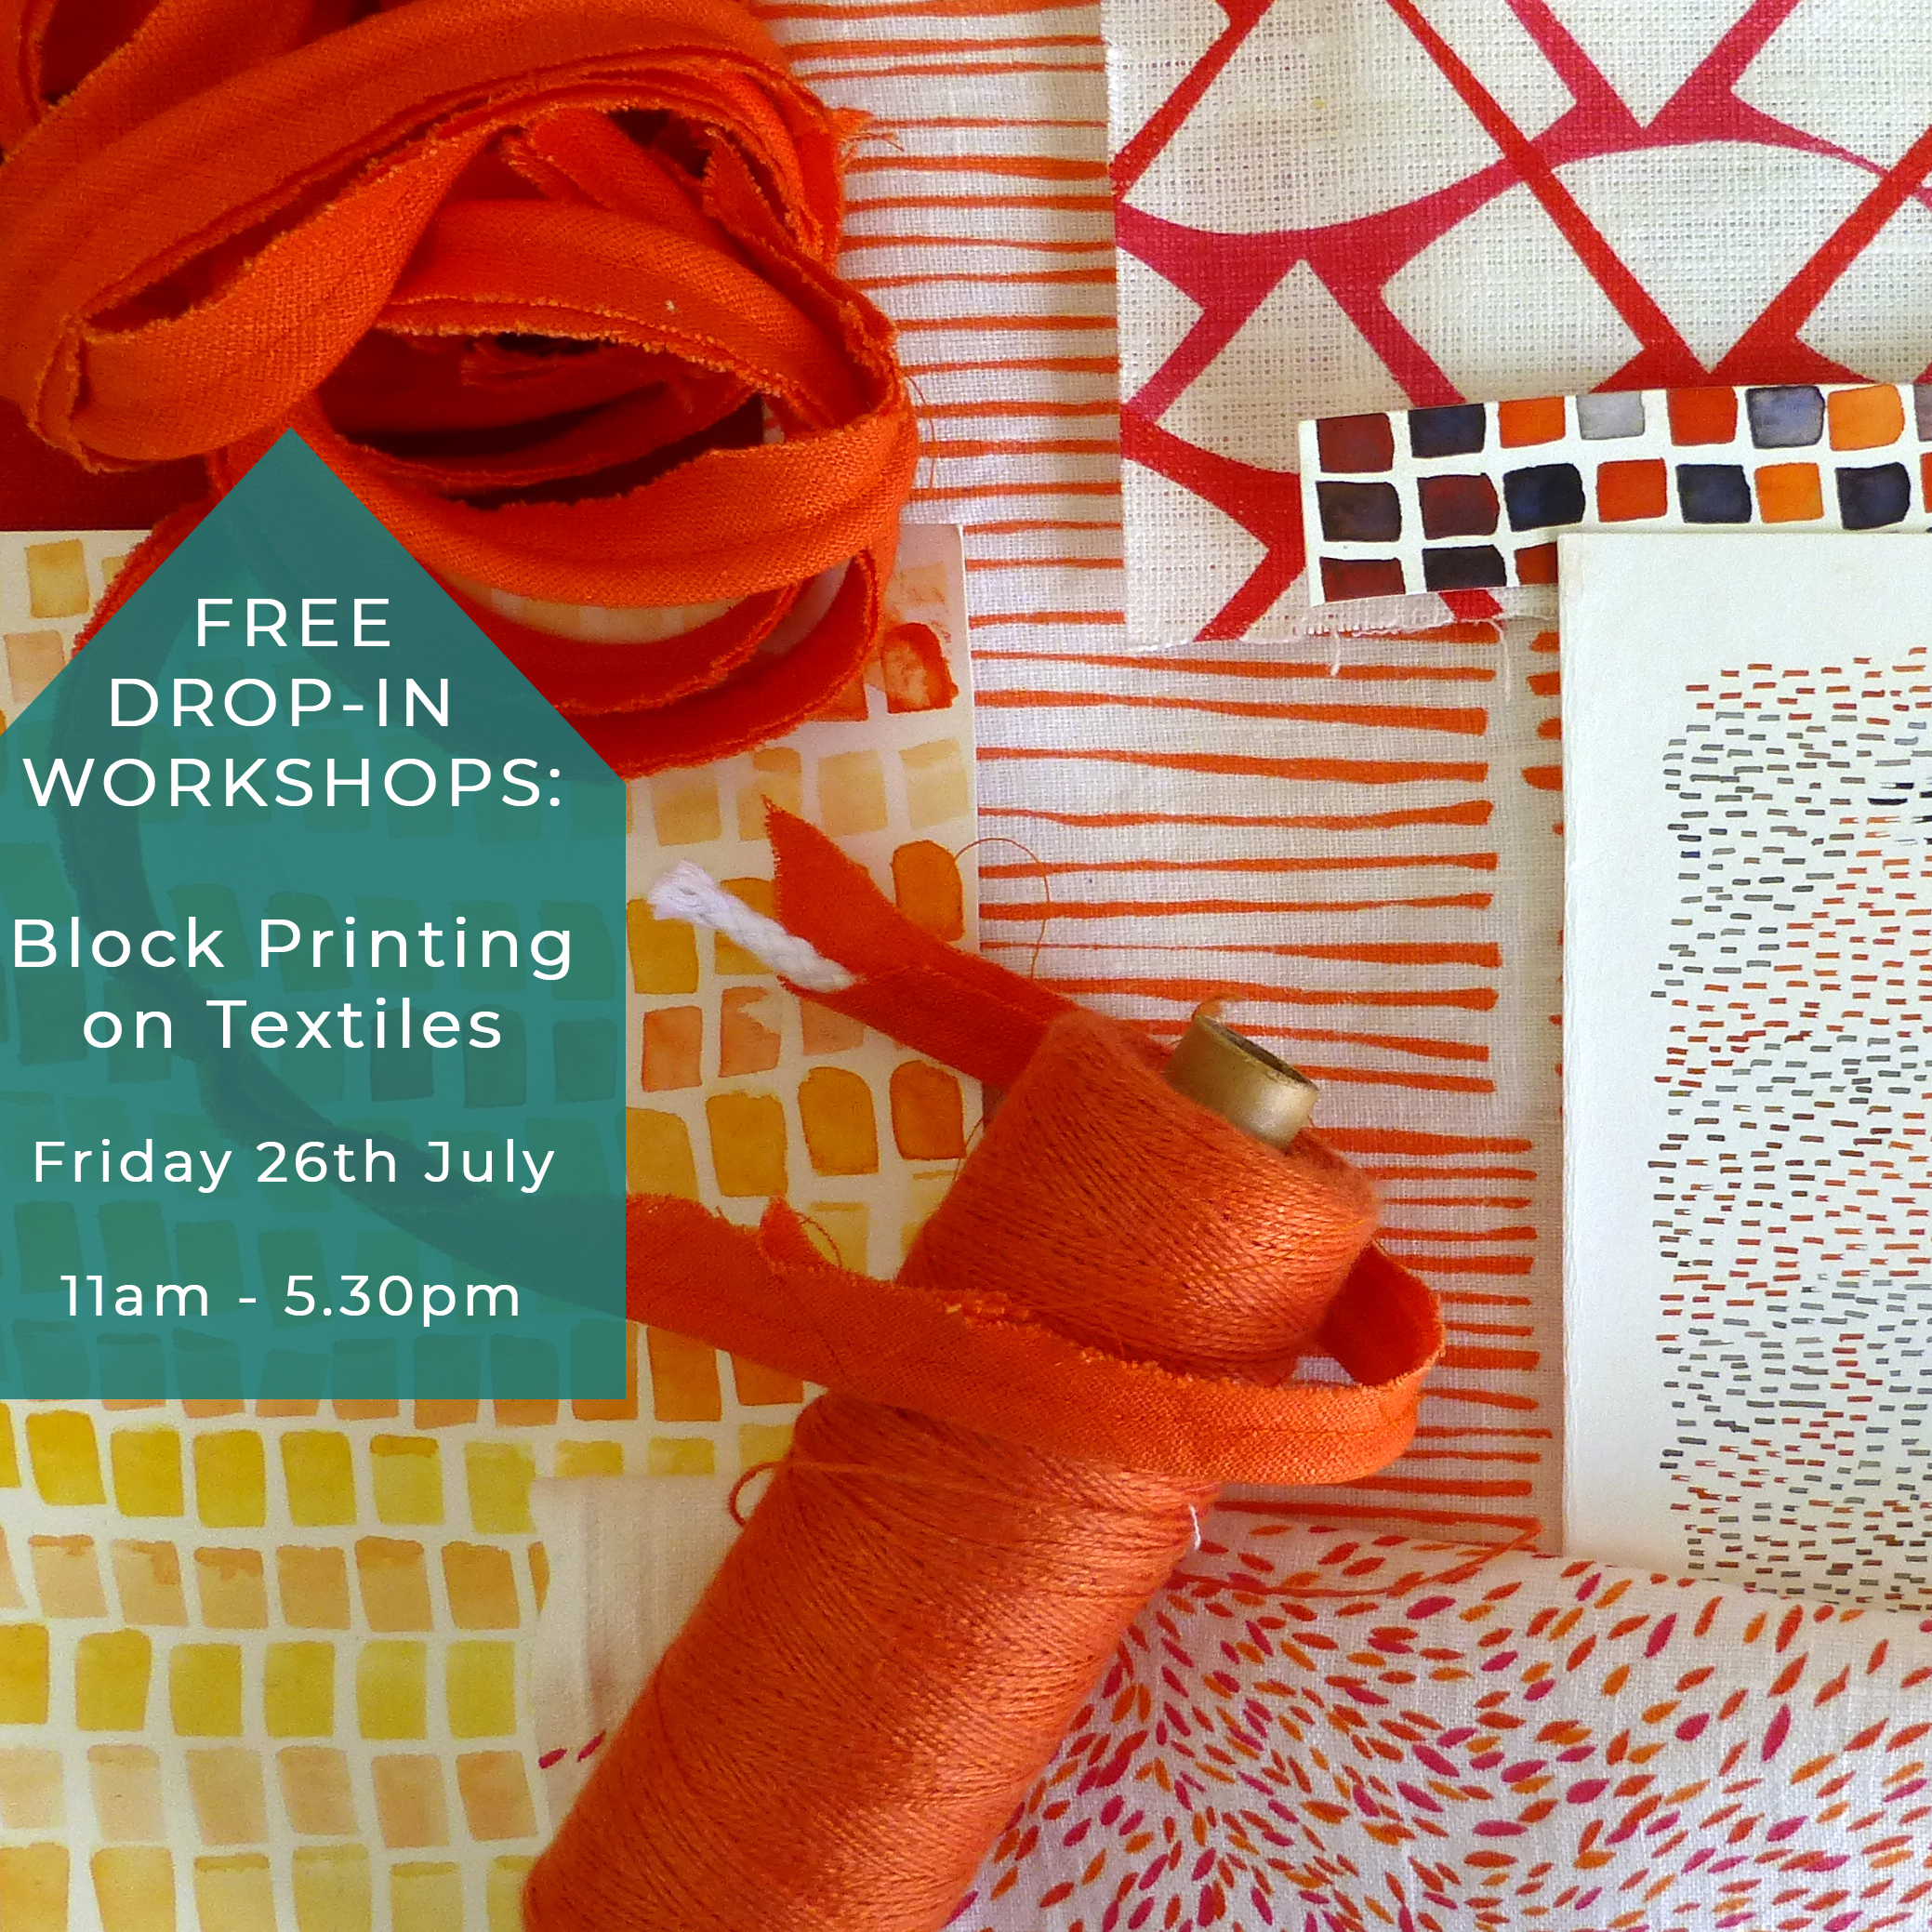 26th July; Free block printing workshop   https://www.eventbrite.co.uk/e/free-block-printing-workshop-and-demonstration-tickets-64983345937